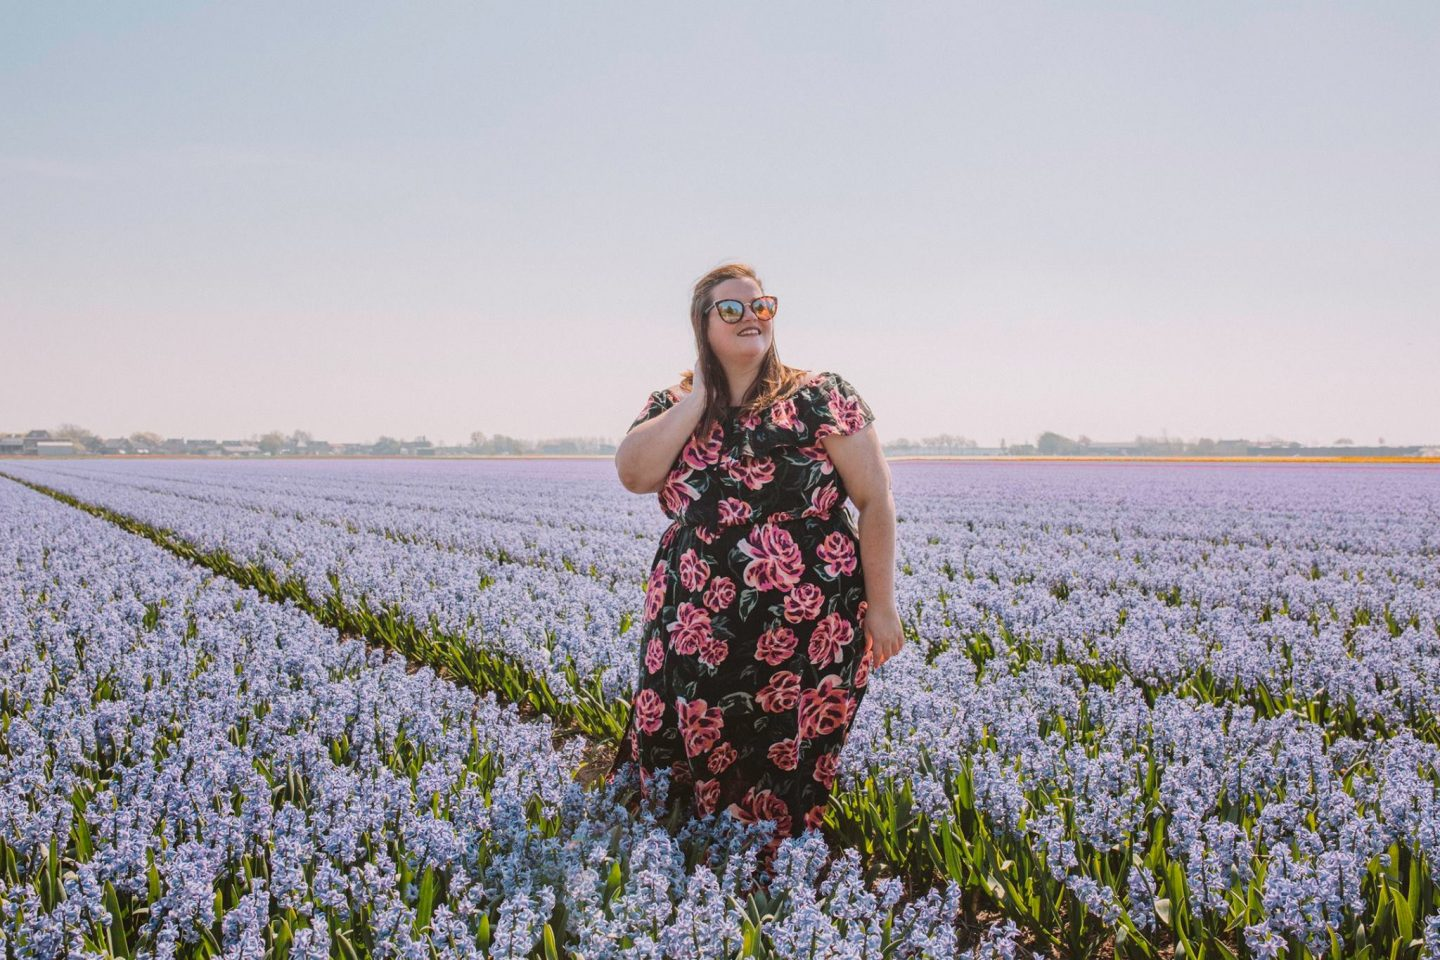 How to get incredible photos of yourself while traveling solo in the Amsterdam tulip fields!